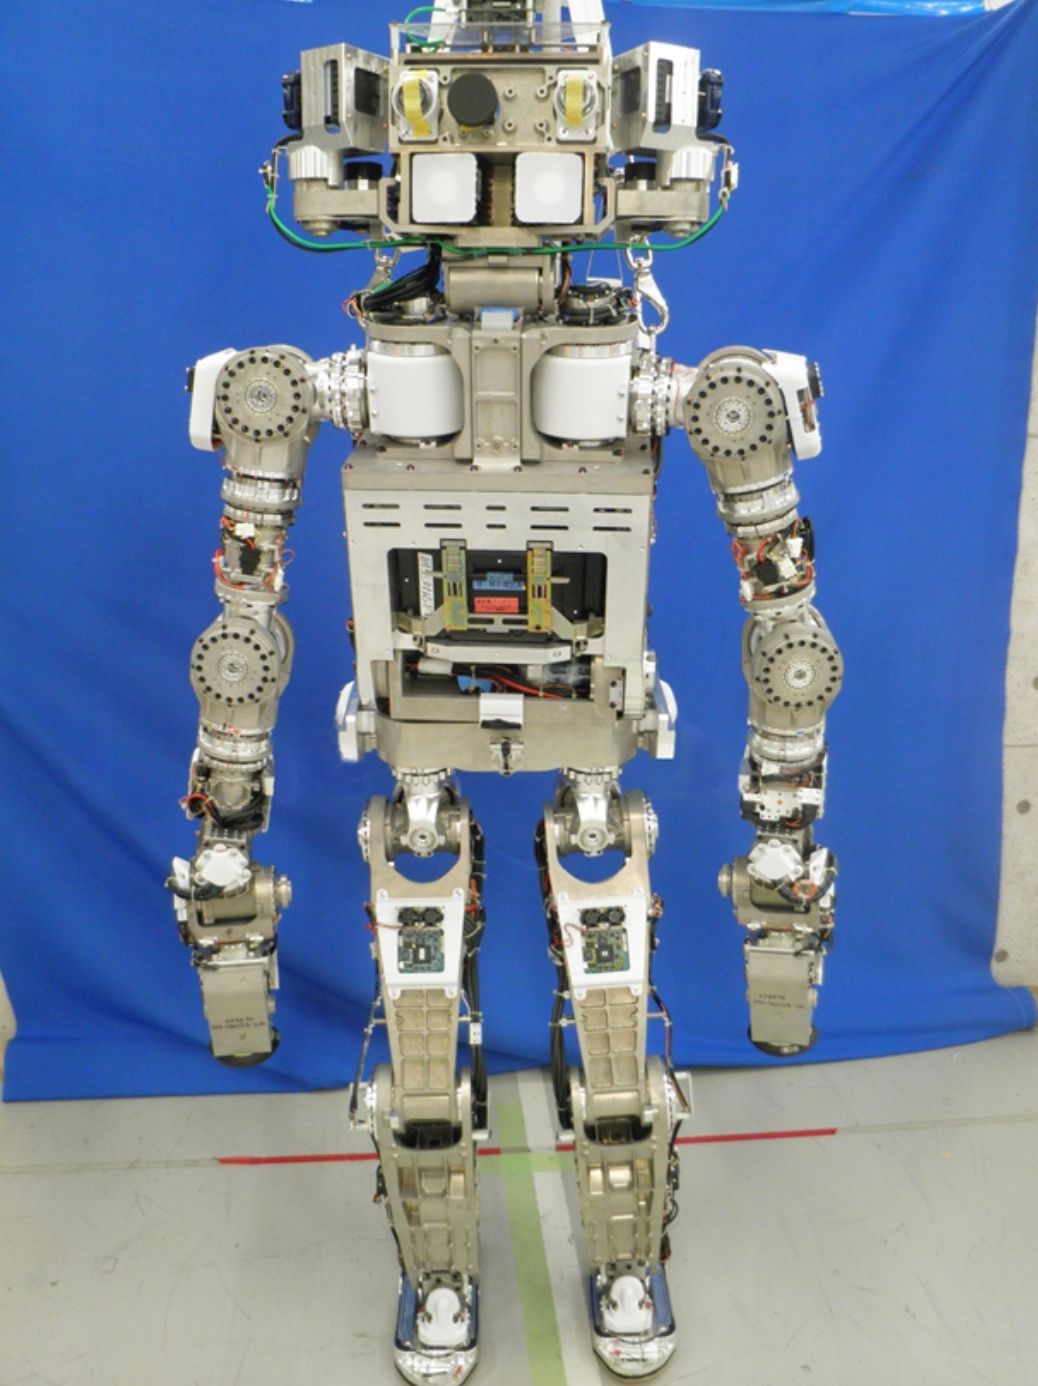 ASIMO designed for disaster response